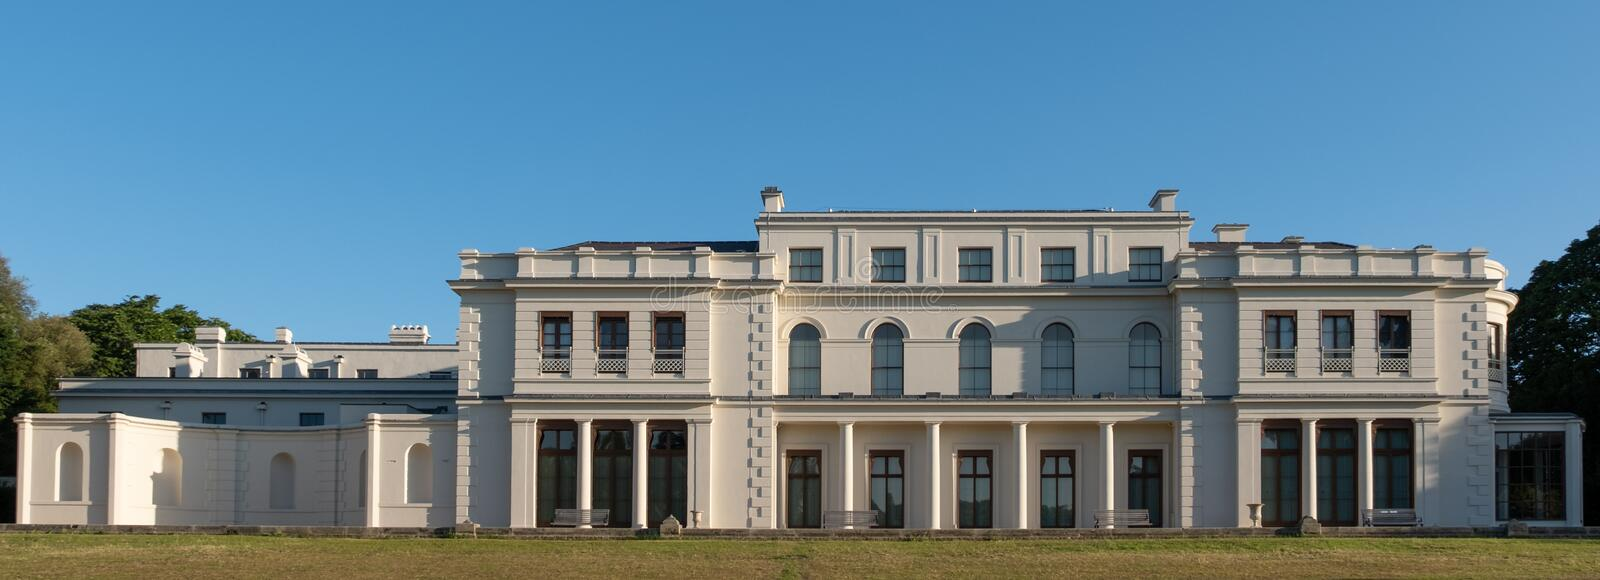 Newly renovated Gunnersbury Park and Museum on the Gunnersbury Estate, once owned by the Rothschild family, London UK. Newly renovated Gunnersbury Park and royalty free stock photos